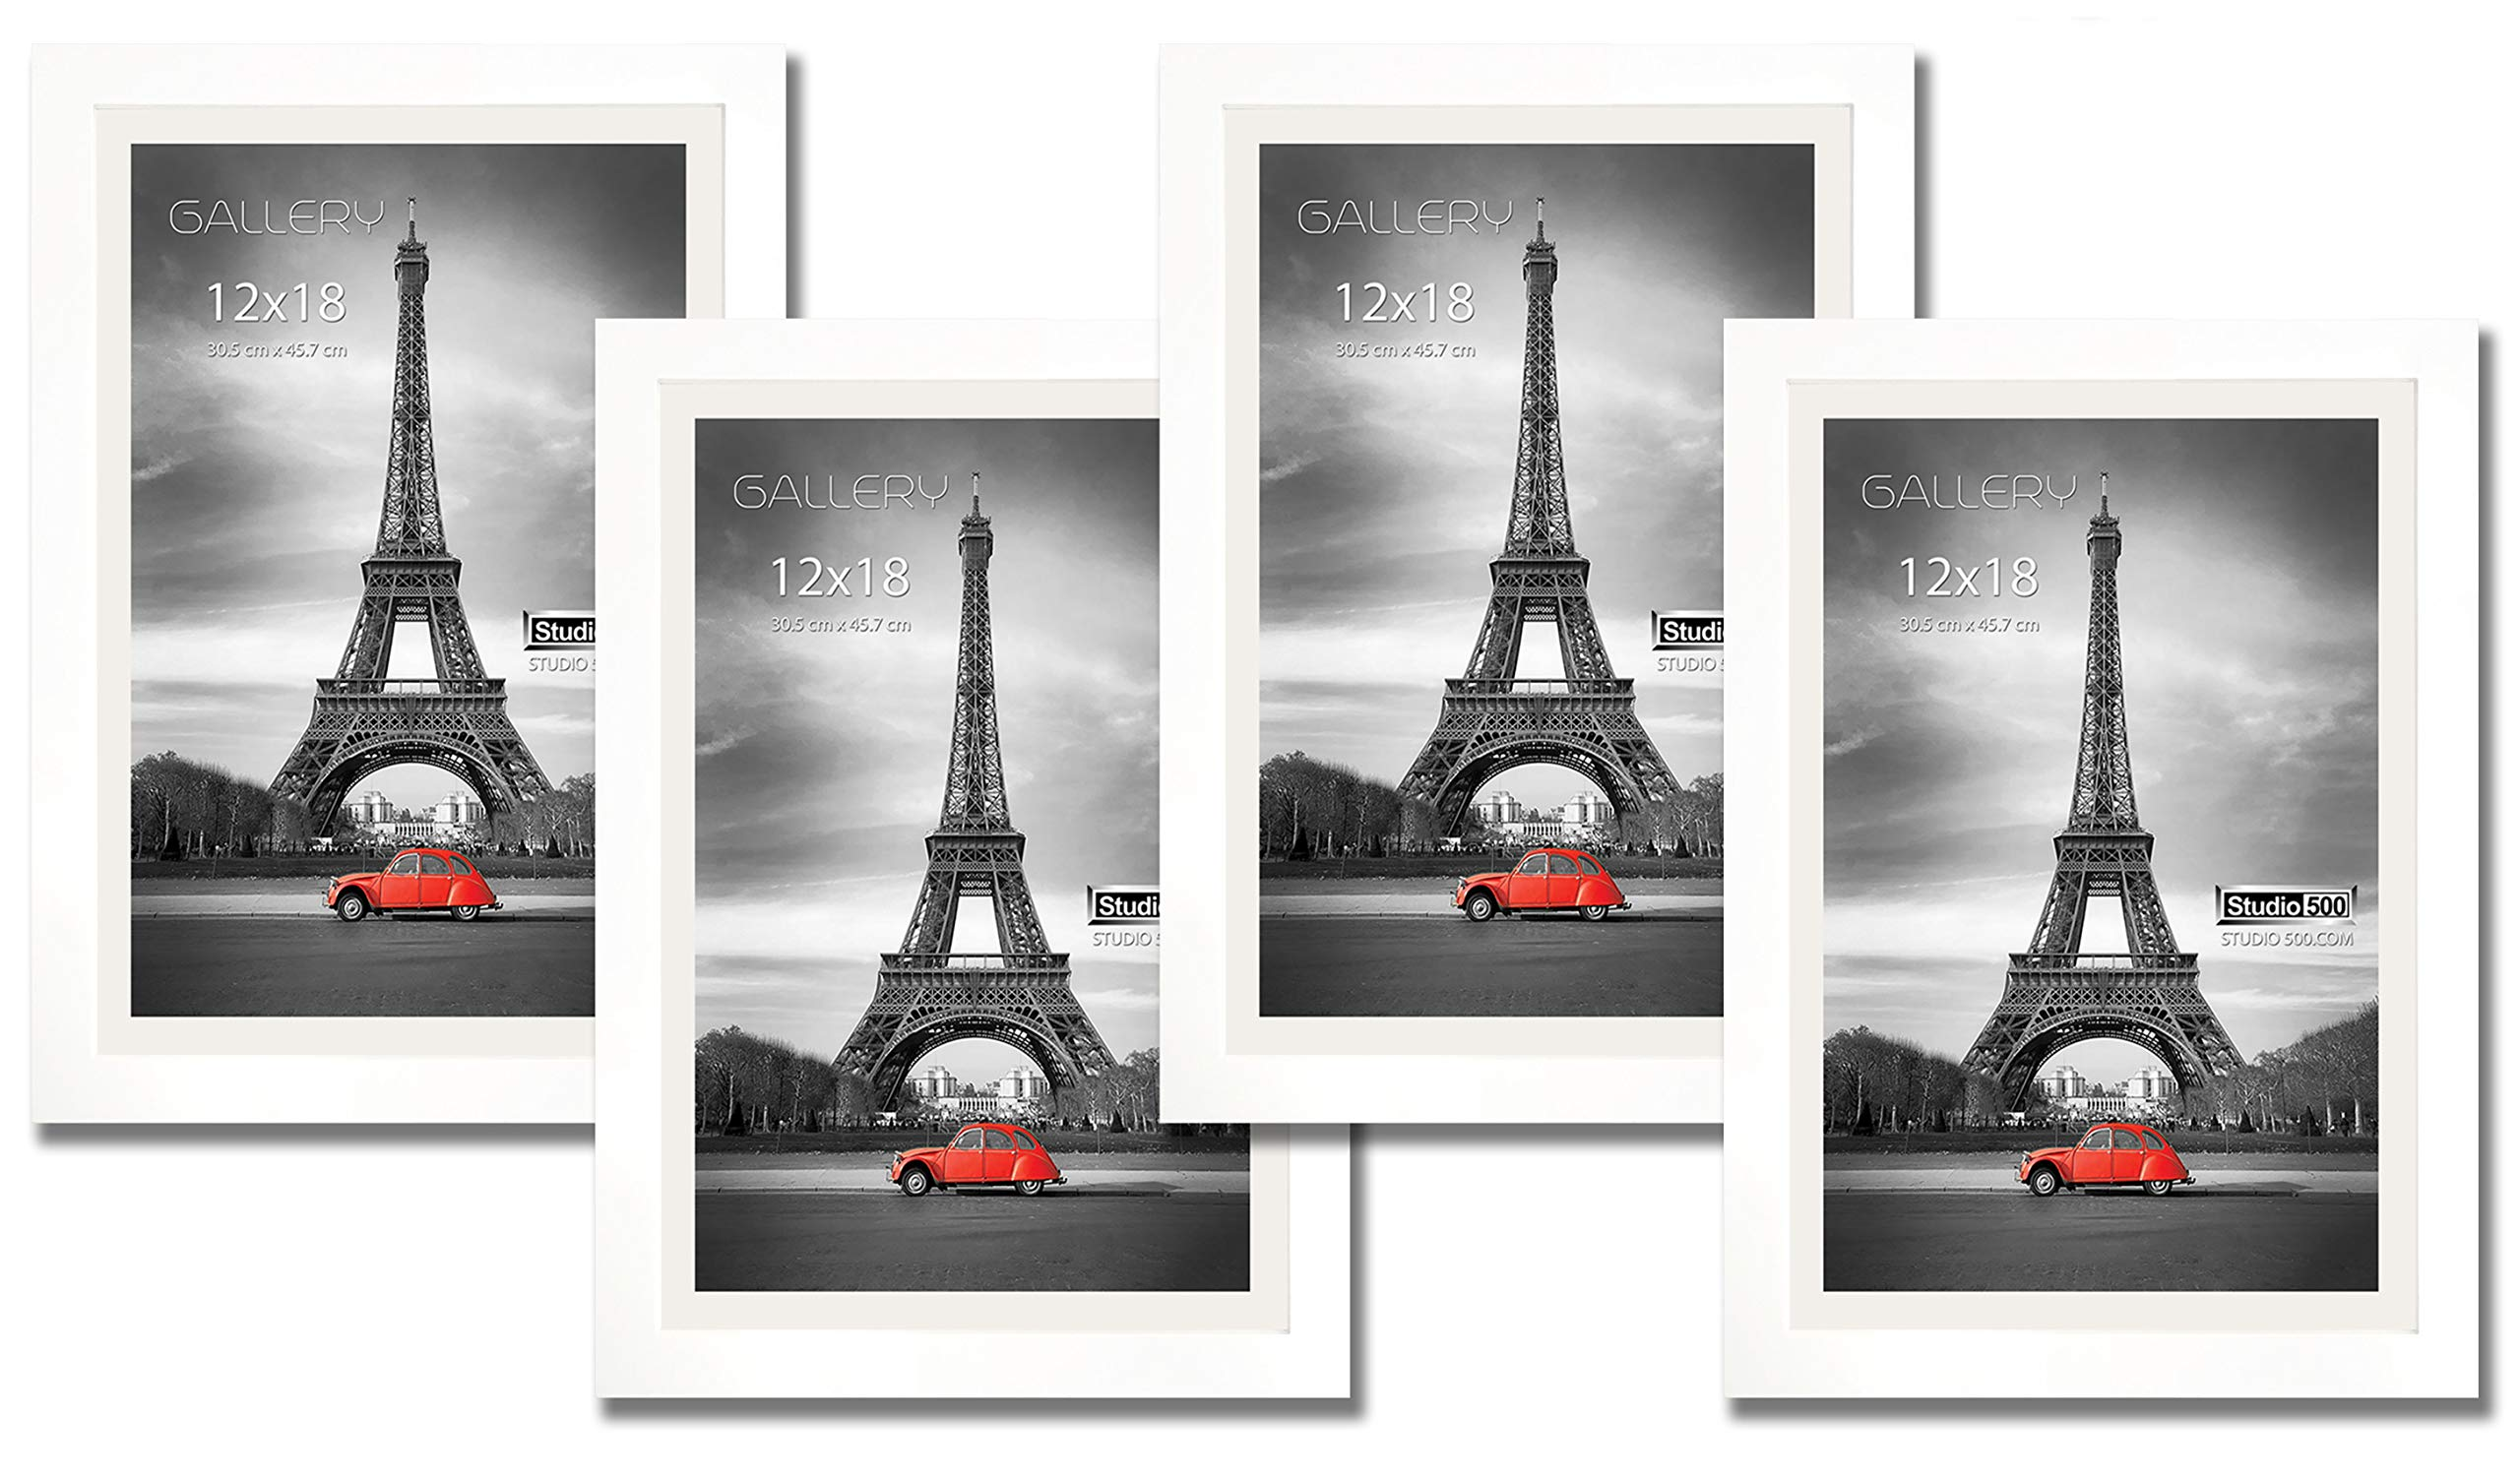 Hall of Frame 4 Value Pack of 12 by 18-inch Real Solid Pine Wood Photo Frames, Tempered Glass, with Acid-Free Off-White Core Mat Board for 11x17 Photos, Comes in 2 Colors: (White)